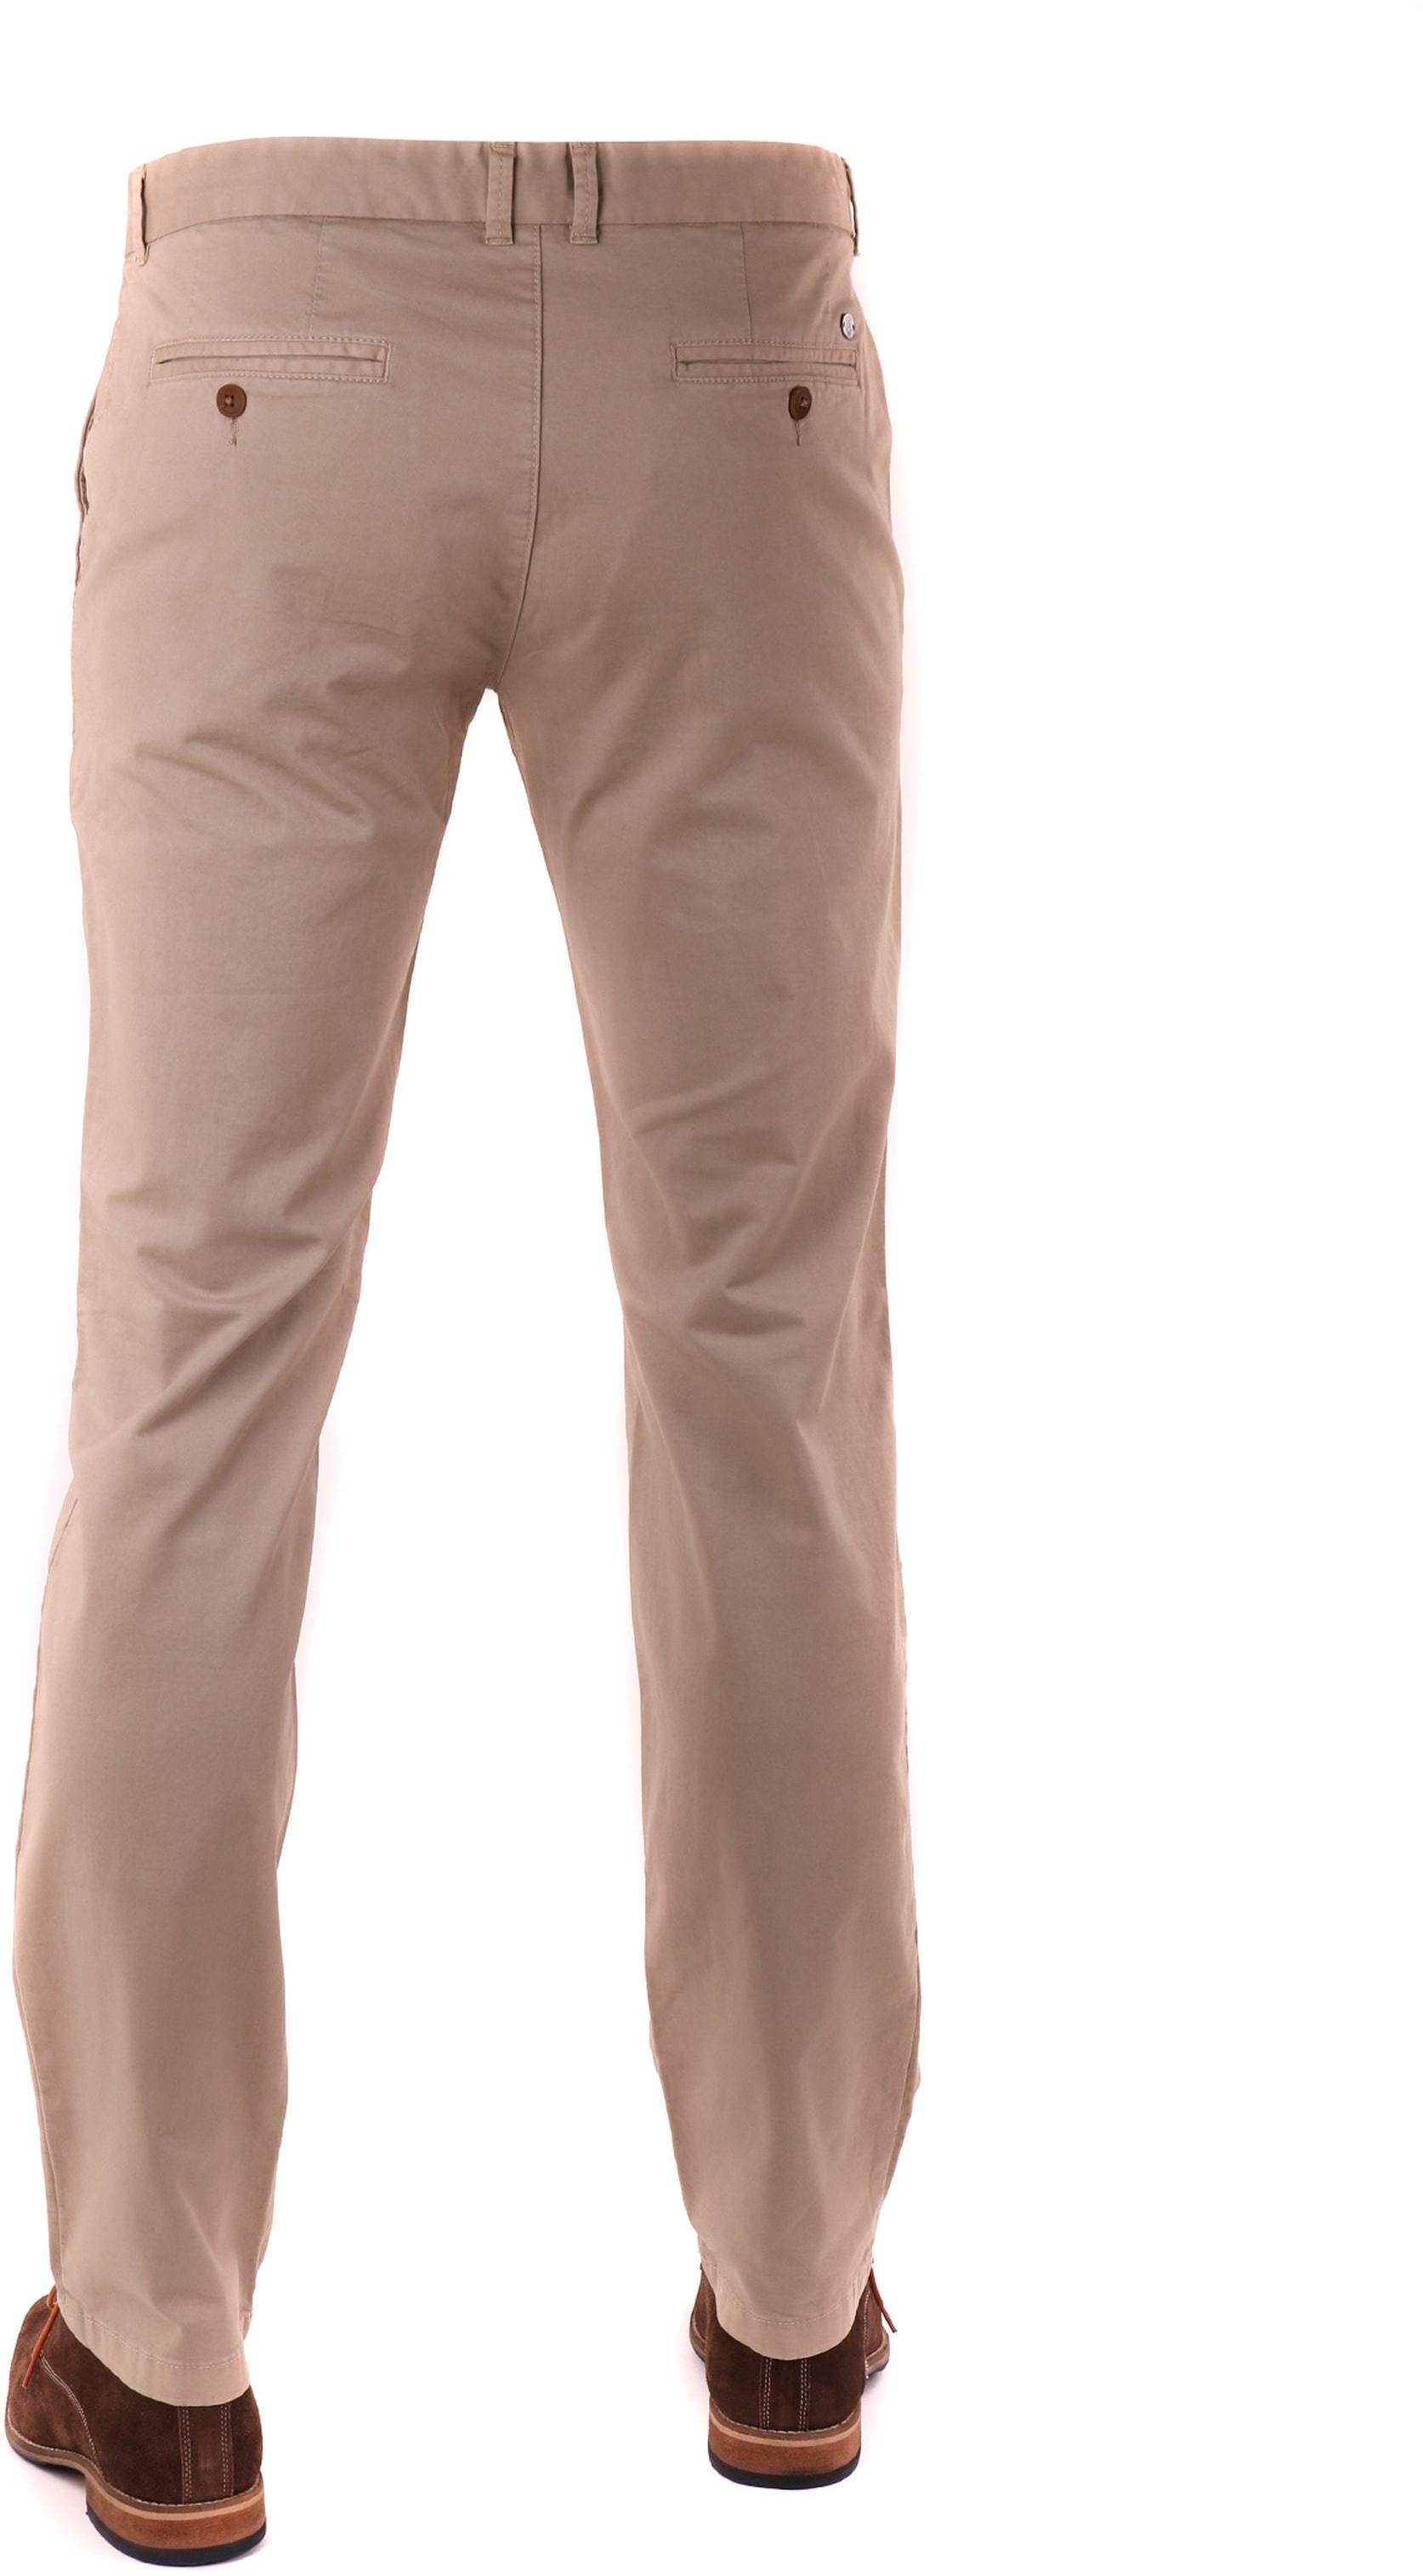 Suitable Chino Hose Khaki foto 1